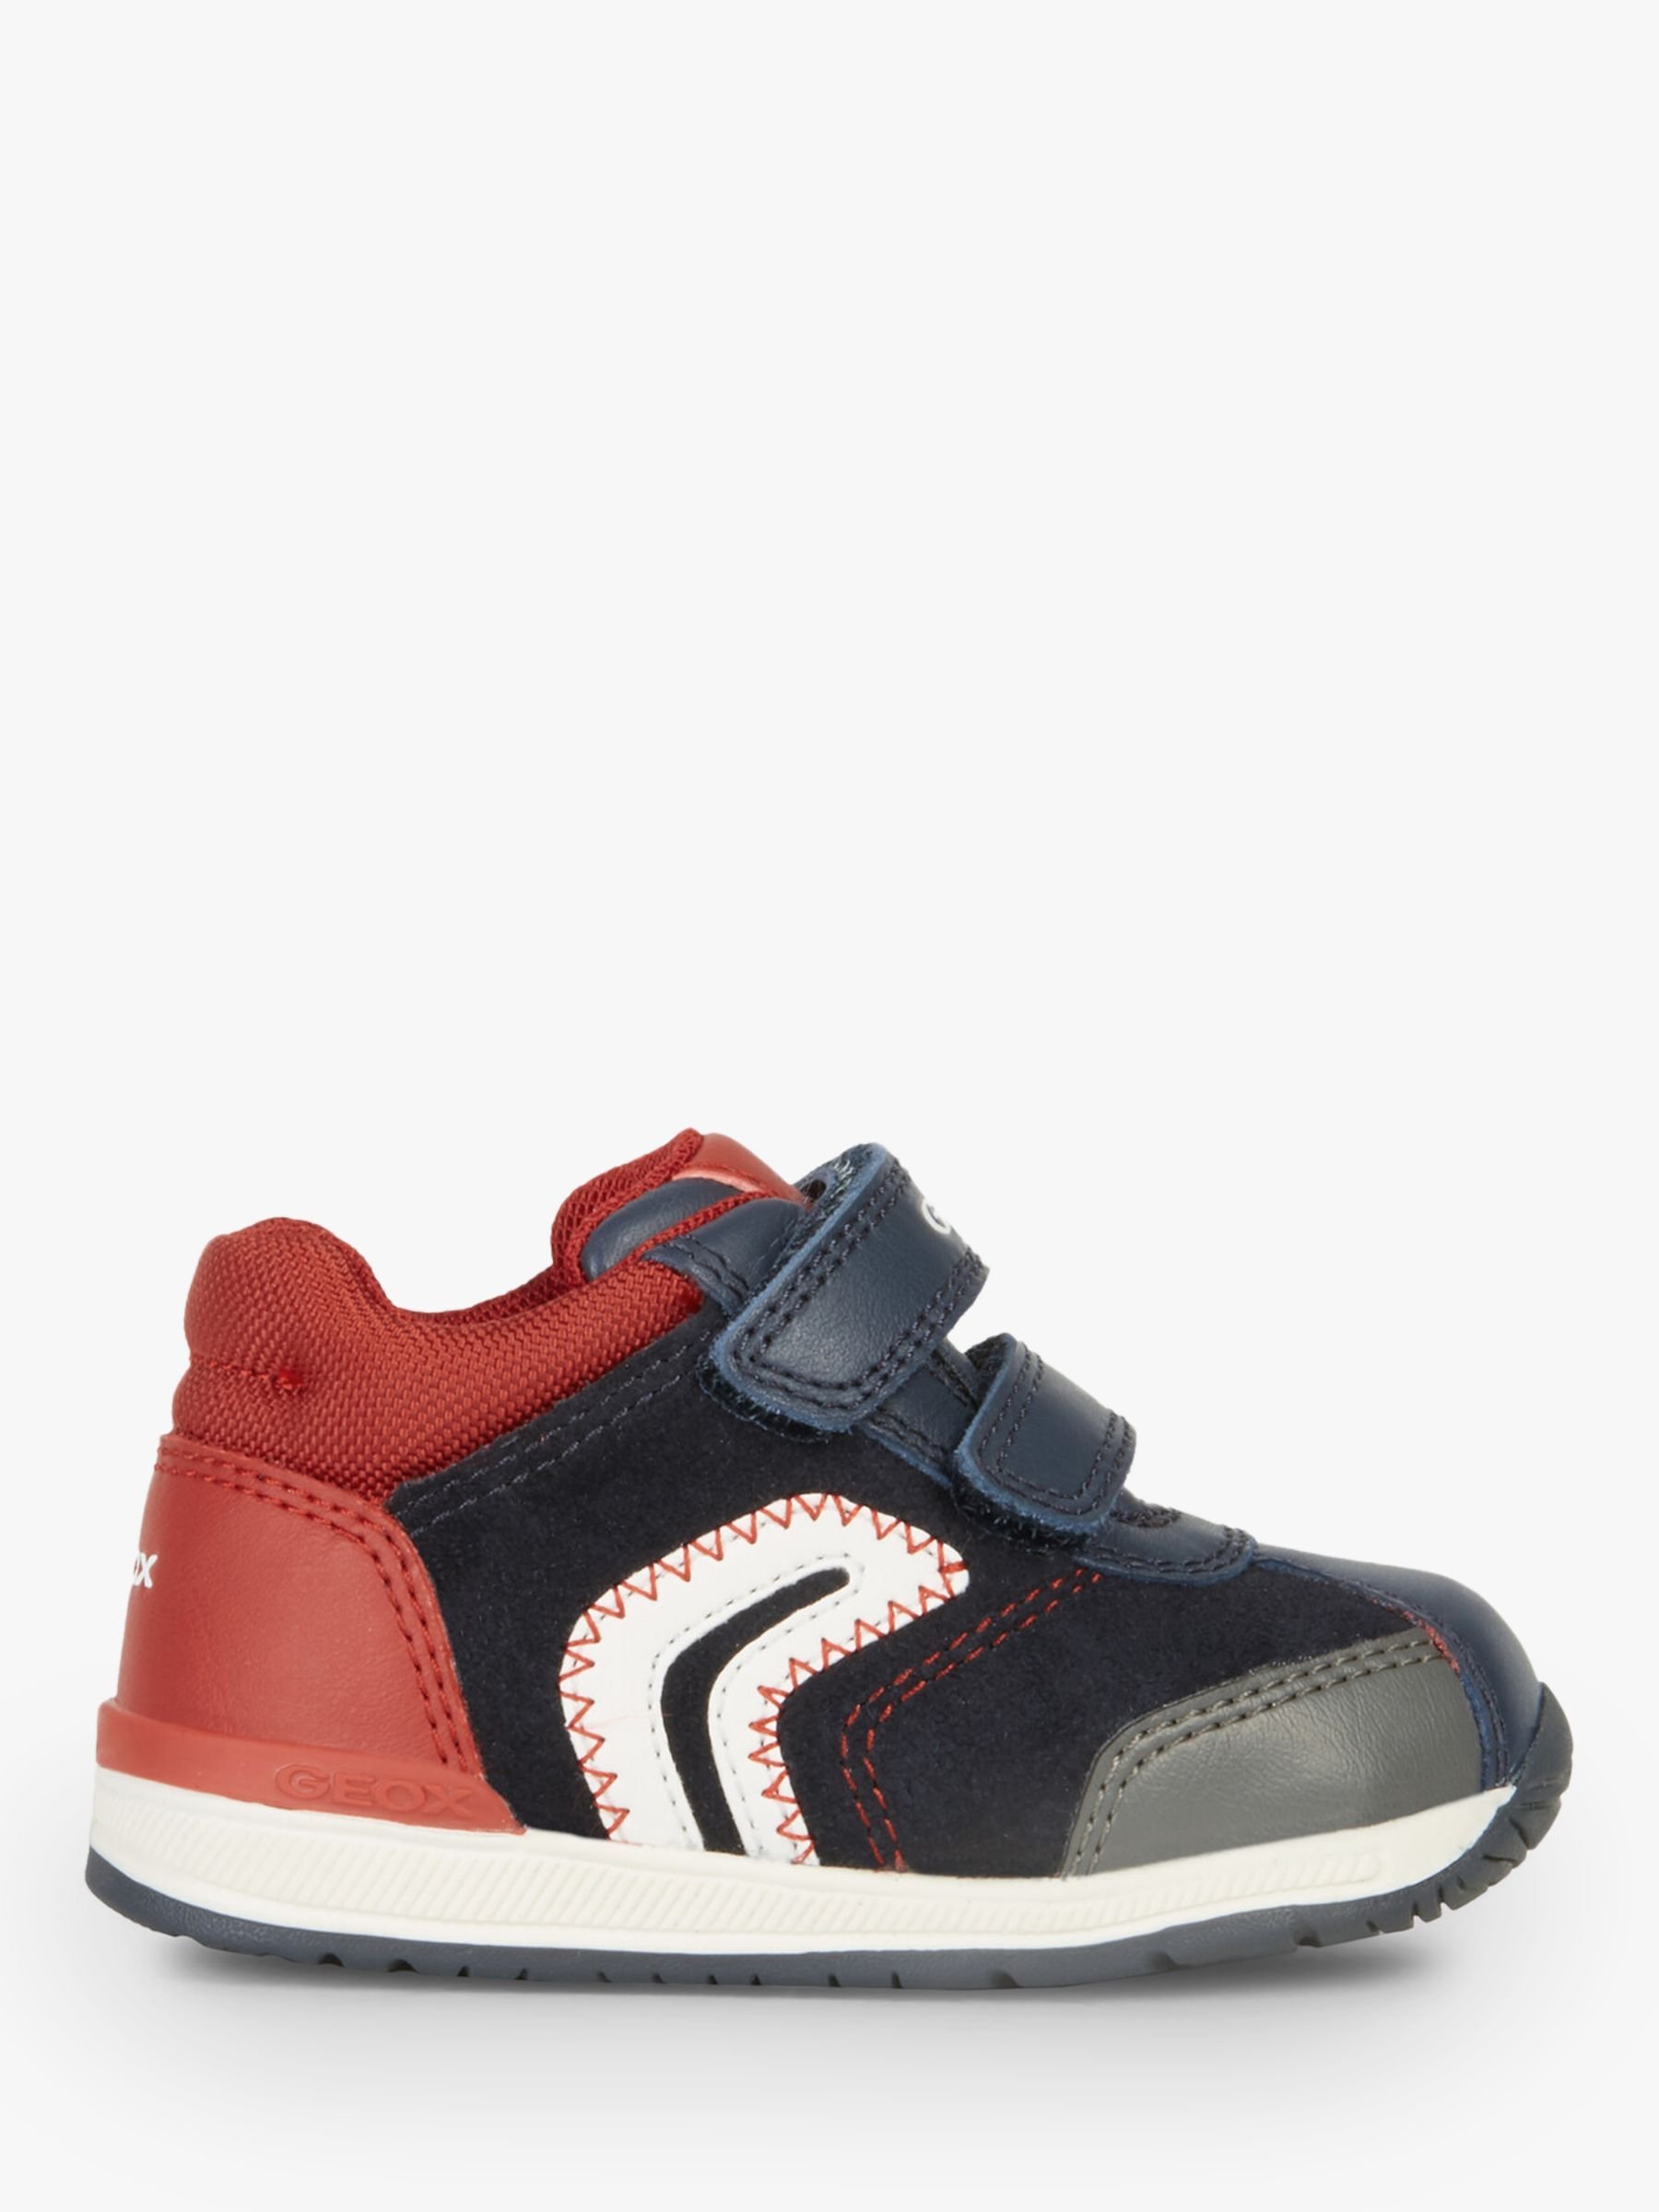 Childrens shoes, Toddler shoes, Casual